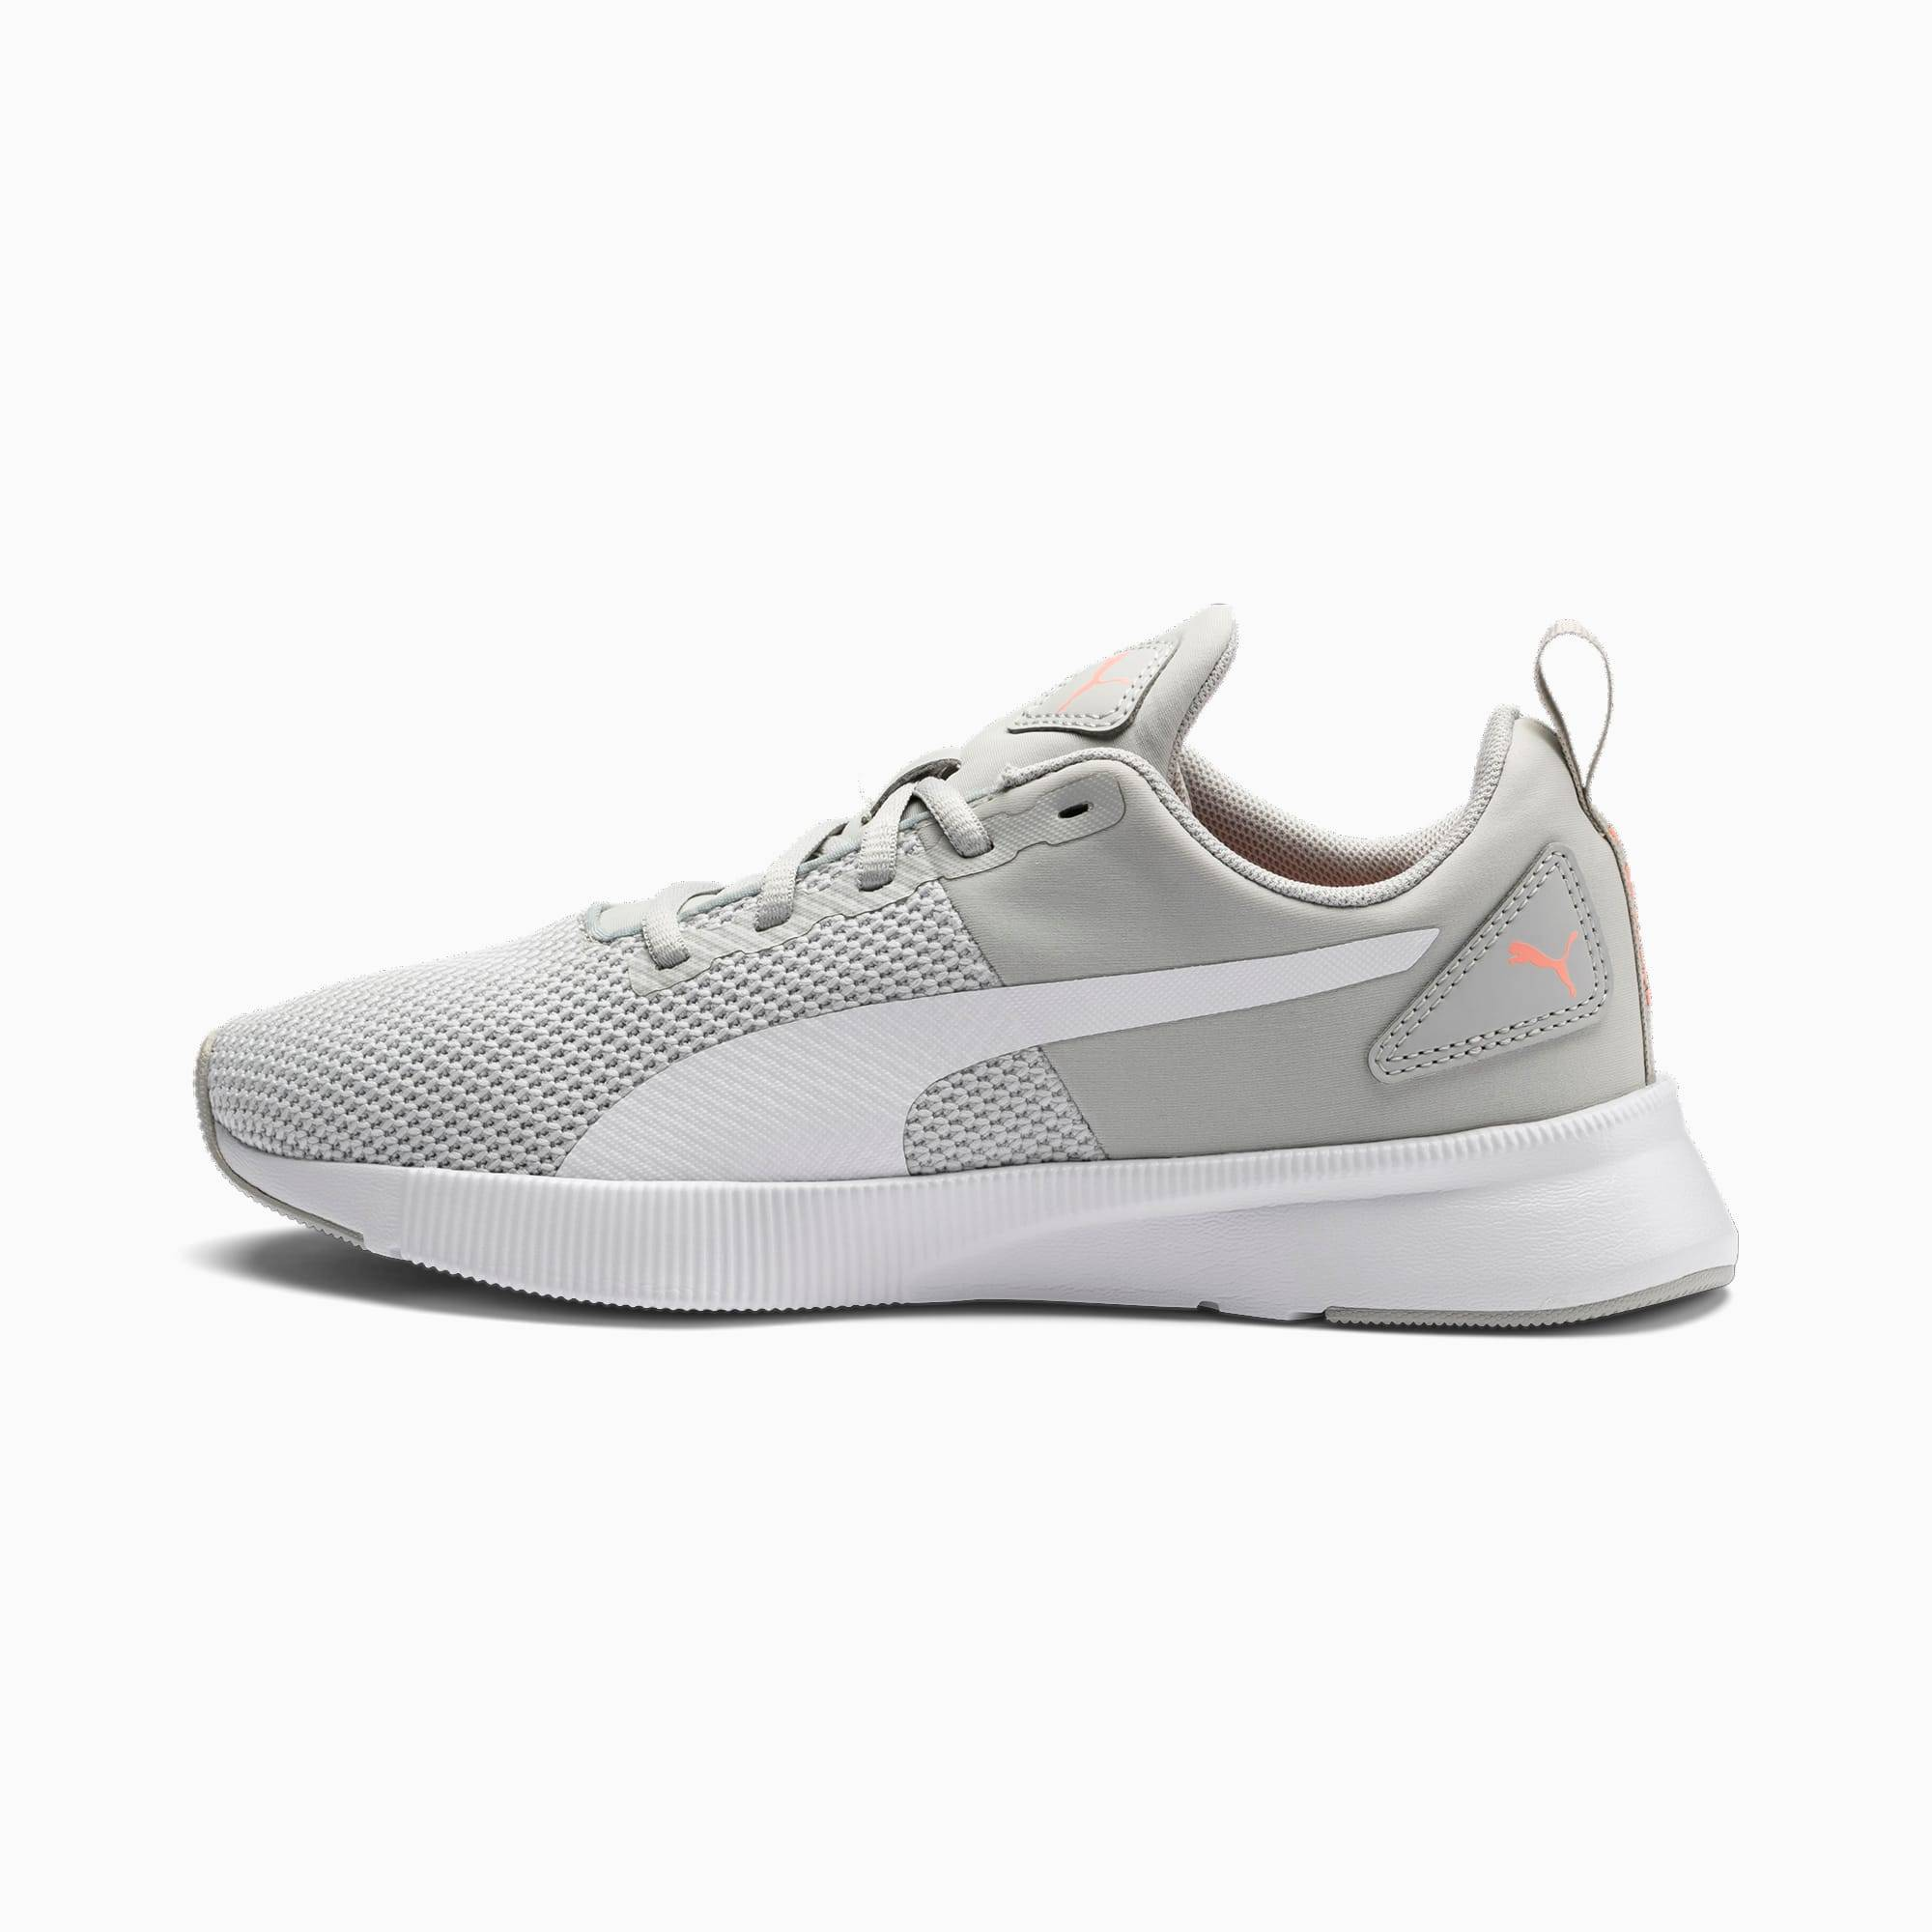 PUMA Chaussure de course Flyer Runner, Blanc/Rose/Gris, Taille 46, Chaussures